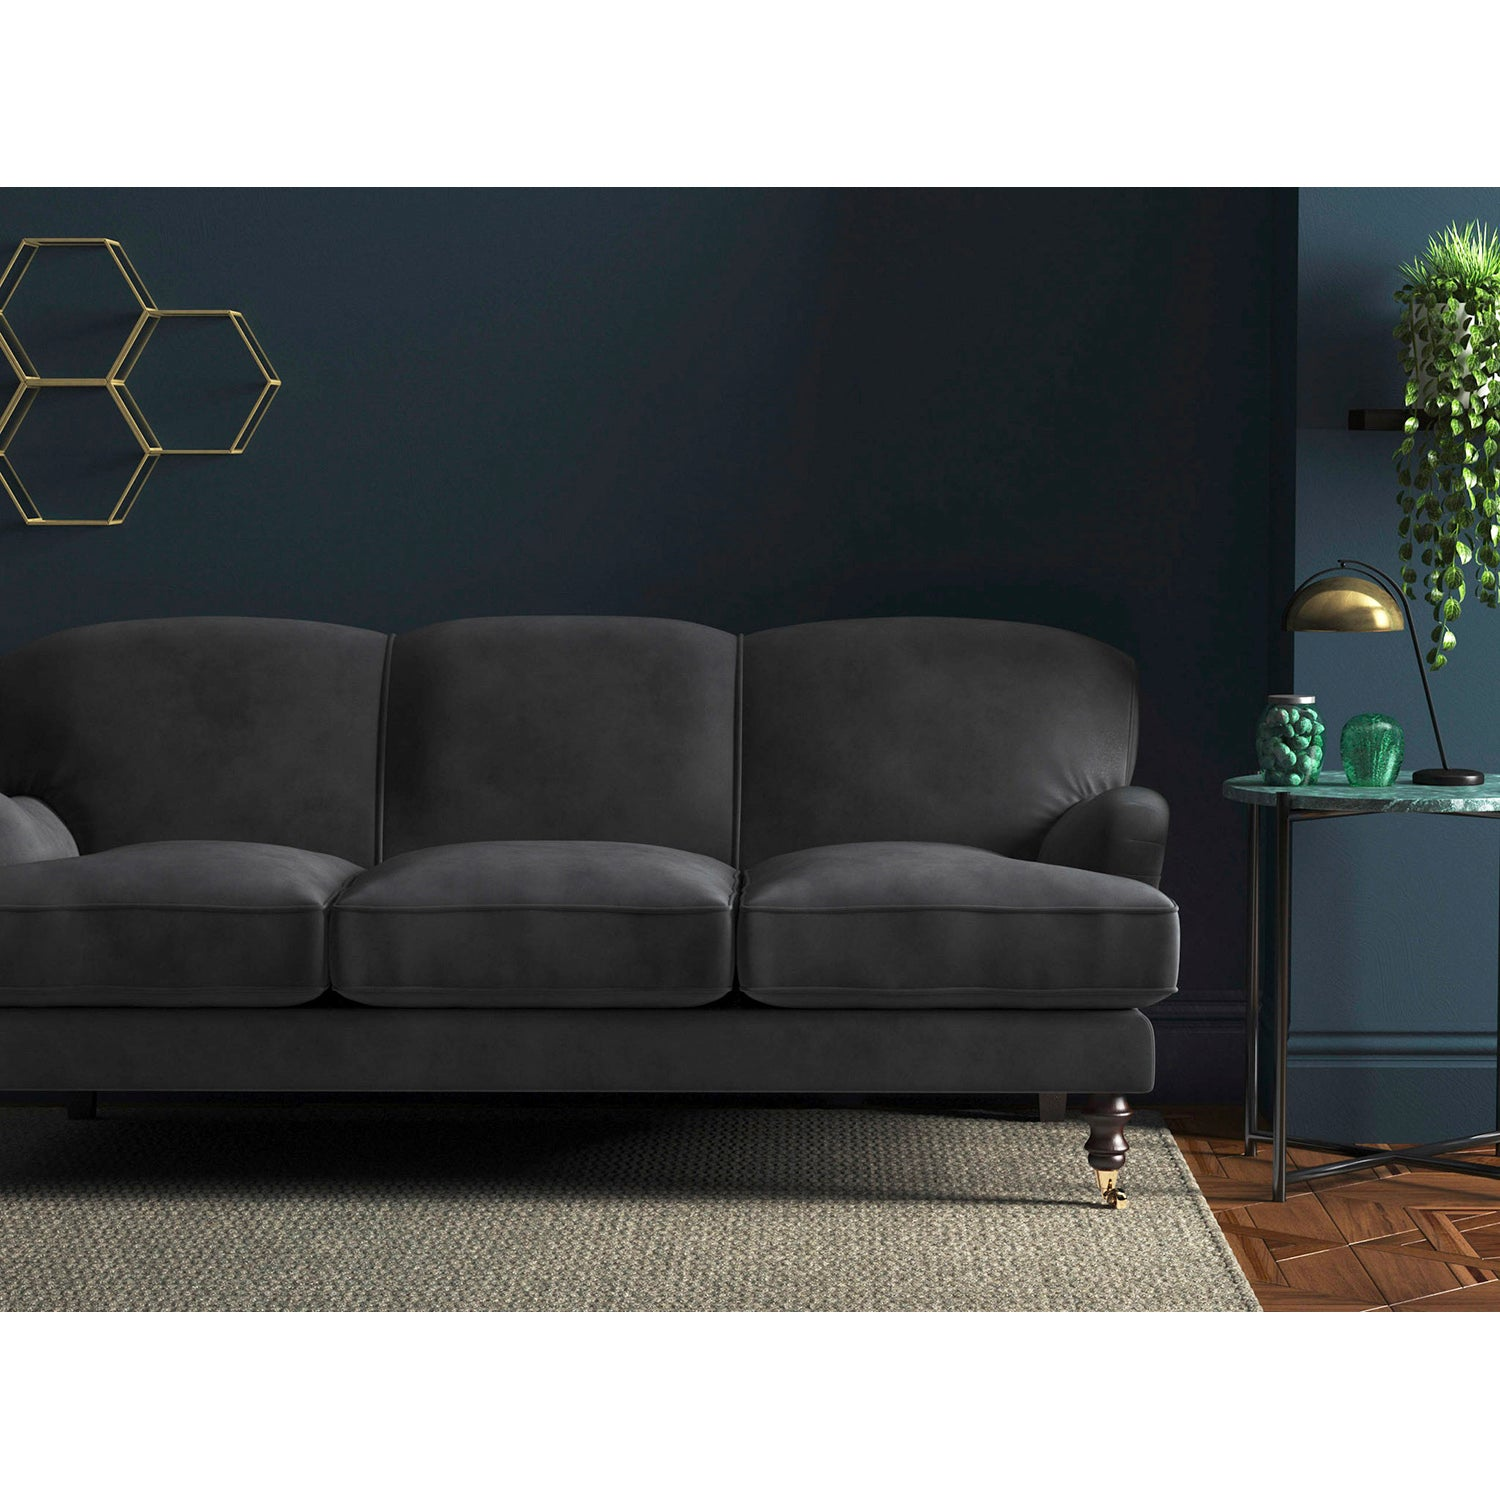 Sofa in a blue-toned grey luxury plain velvet upholstery fabric for domestic and contract use